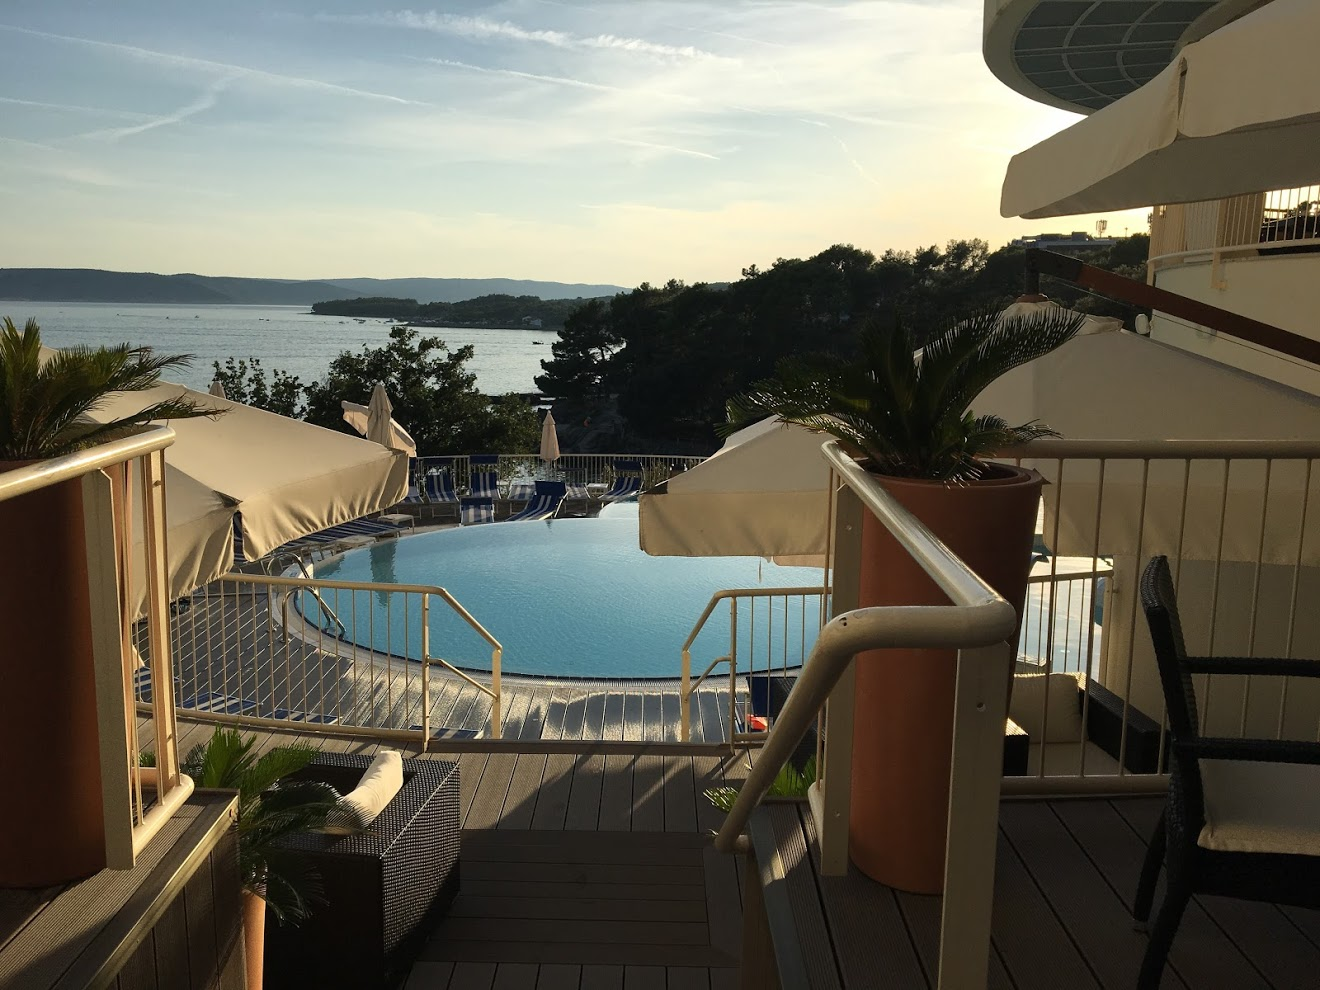 krk croatia beach pool sunset